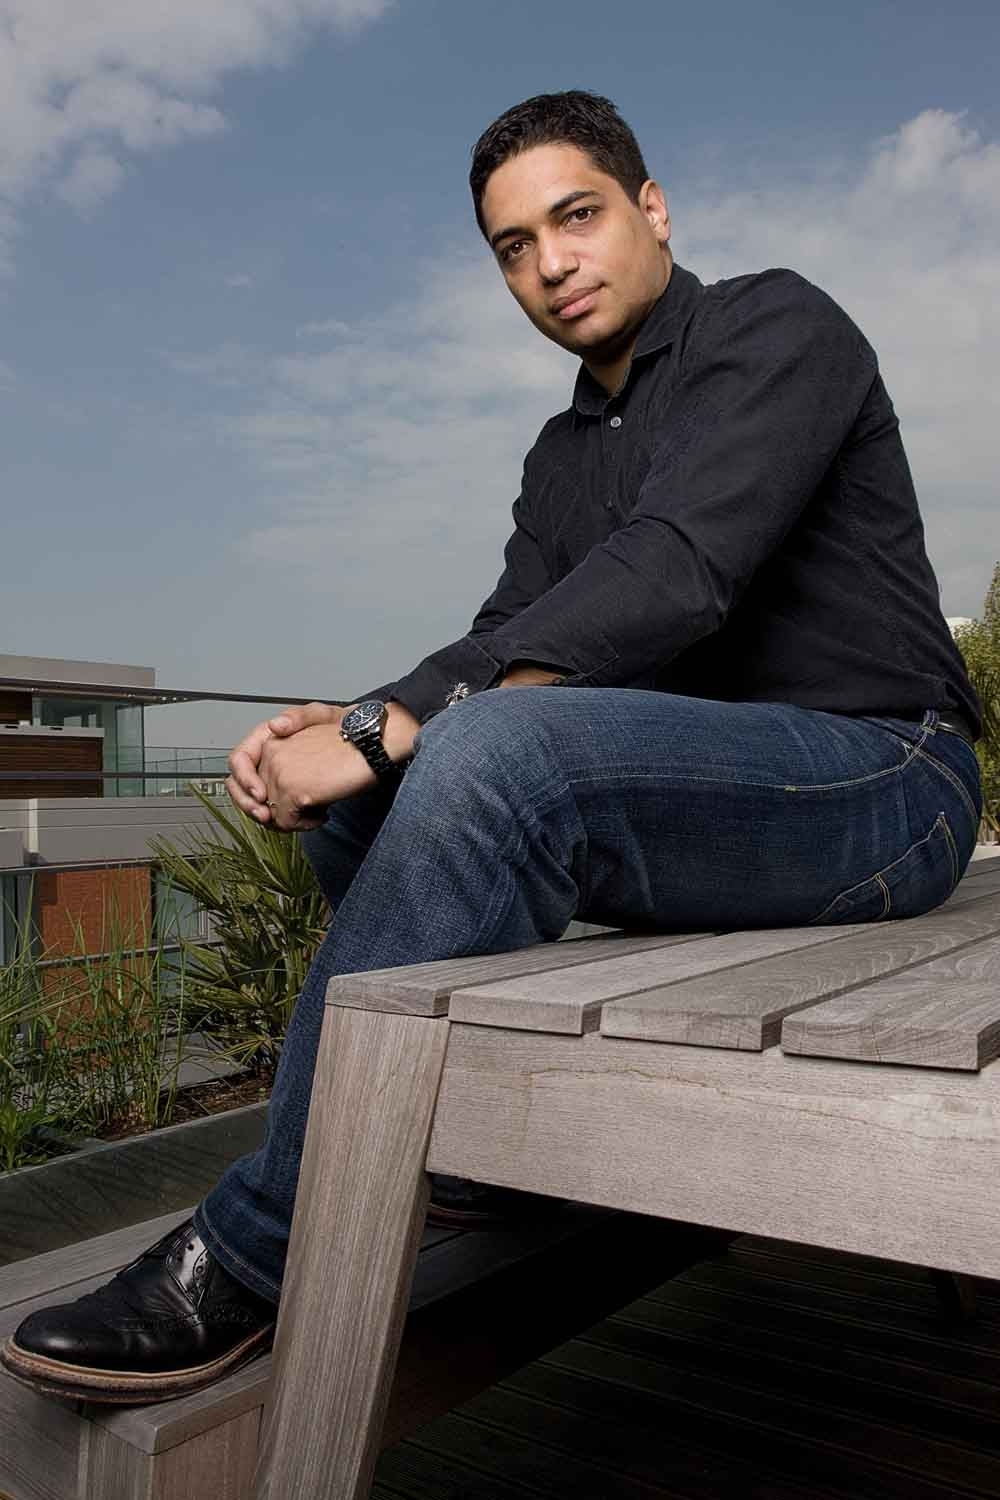 Dragons' Den loses another fire-breather as Piers Linney quits